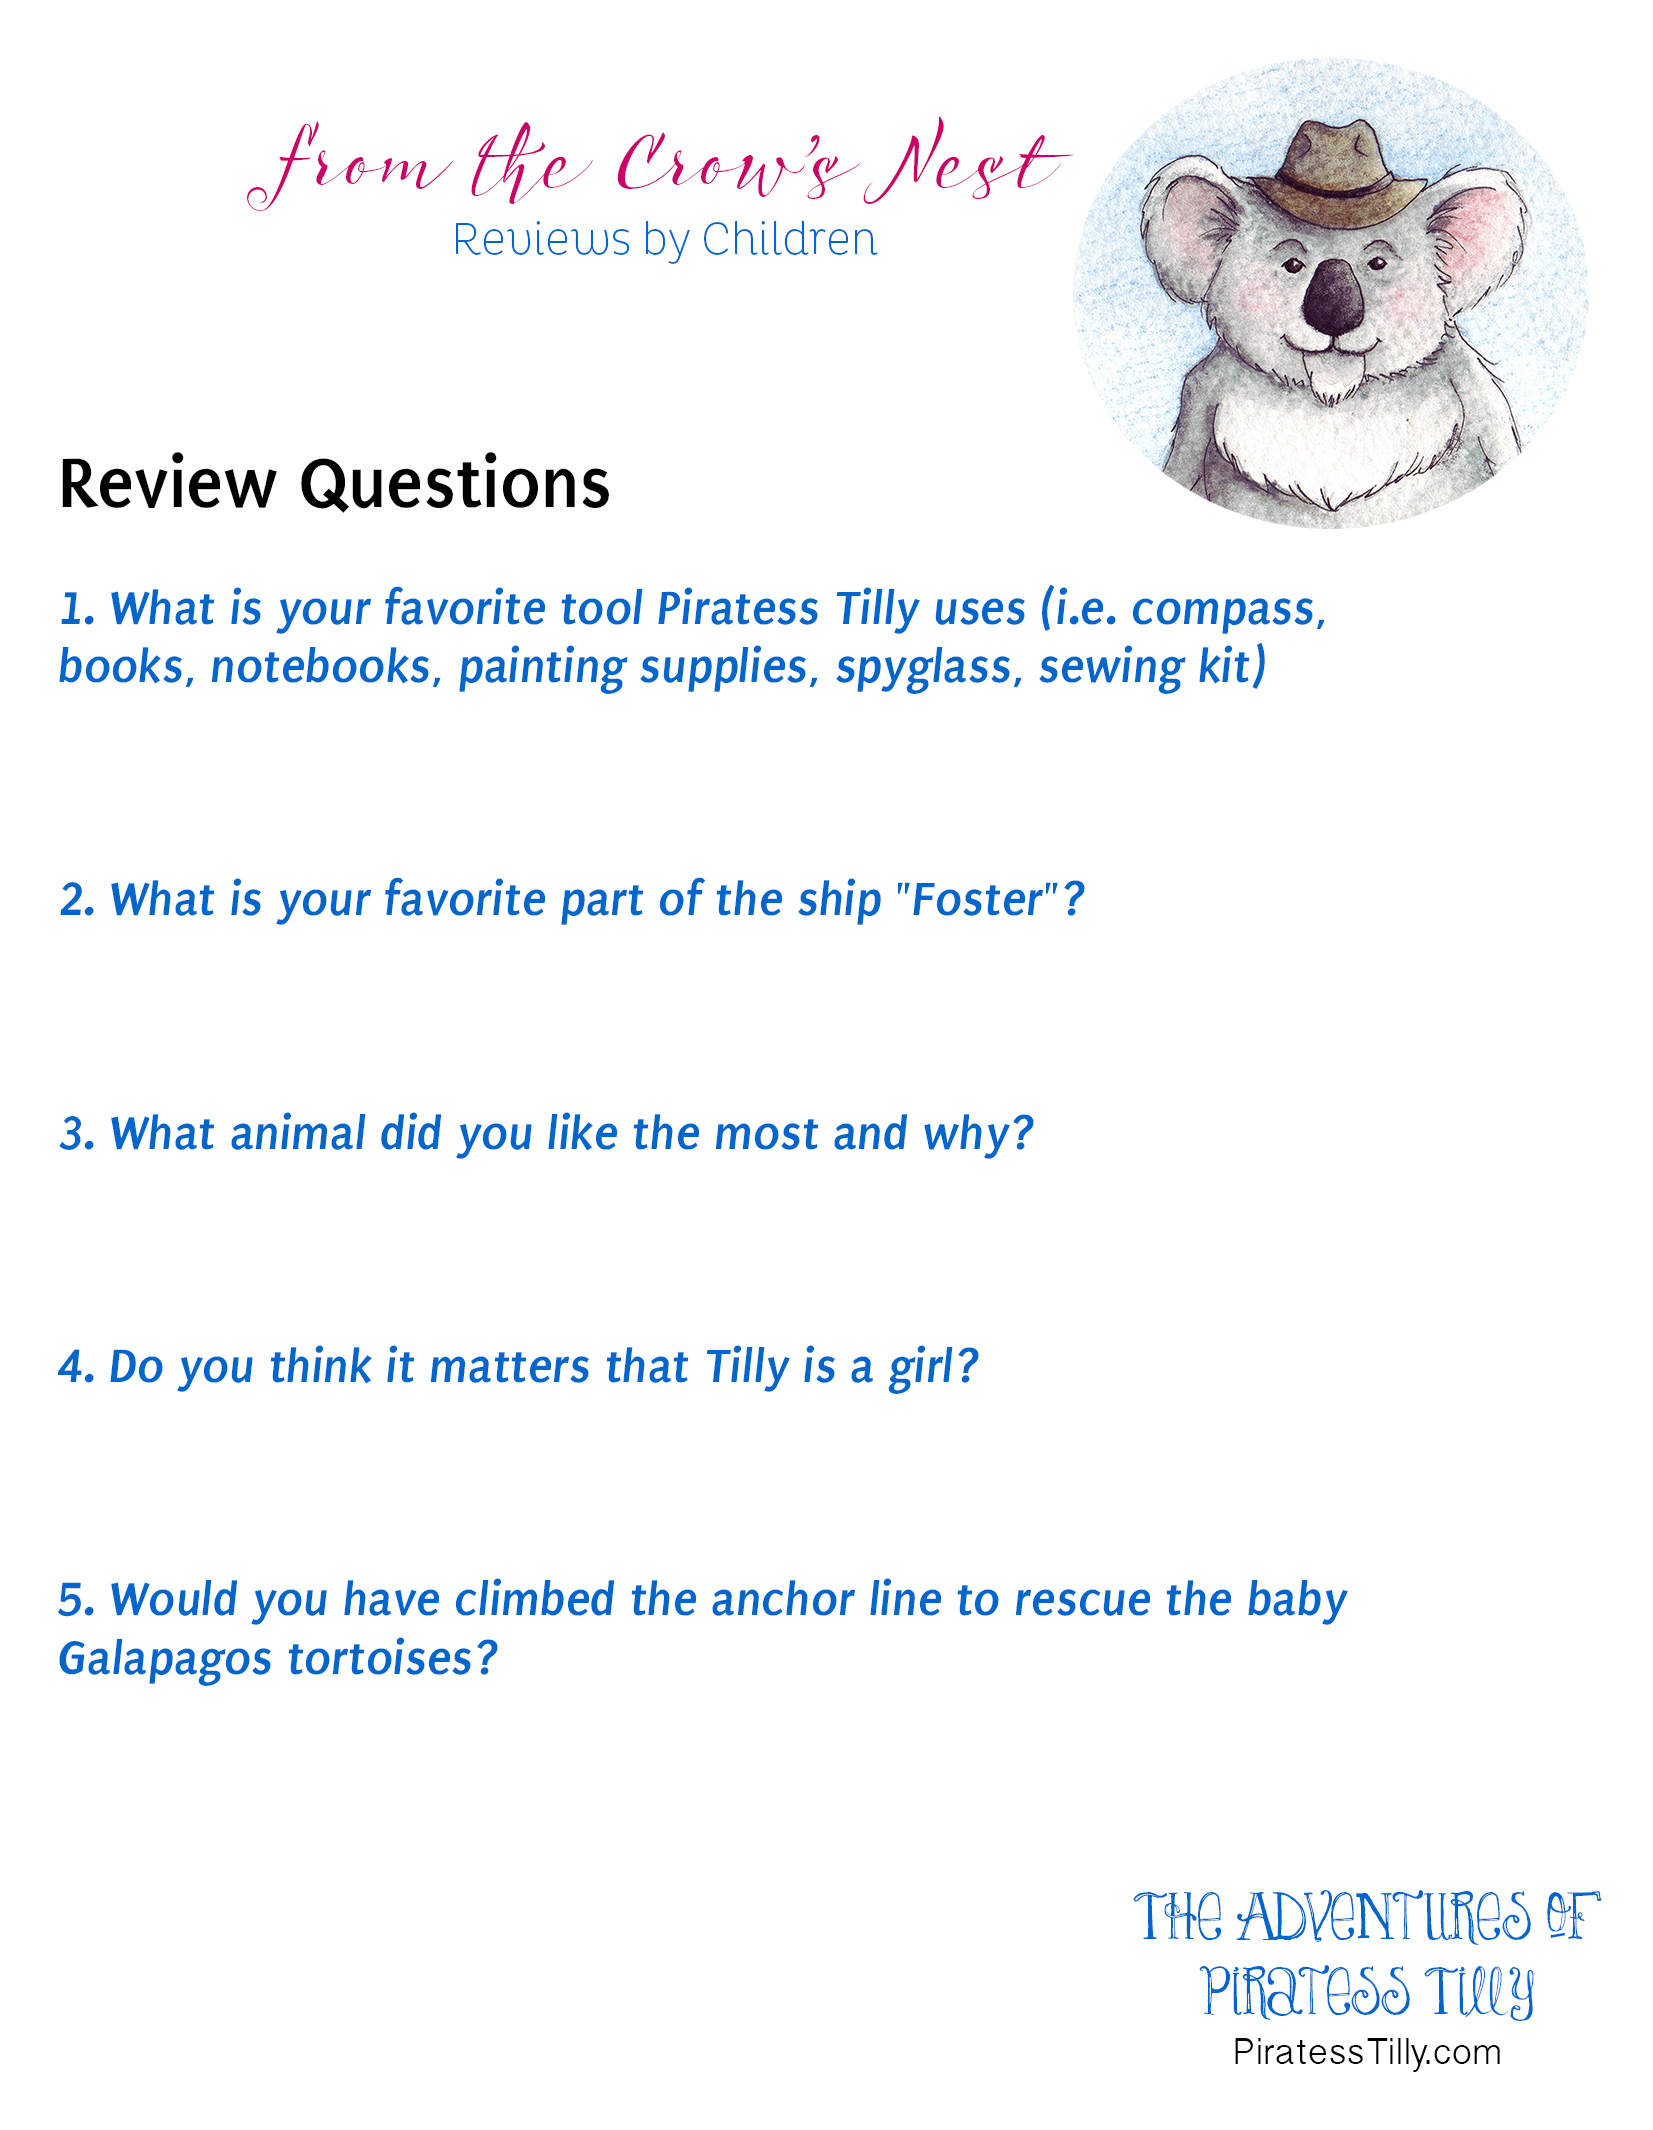 Piratess Tilly Children's Book Review Questions